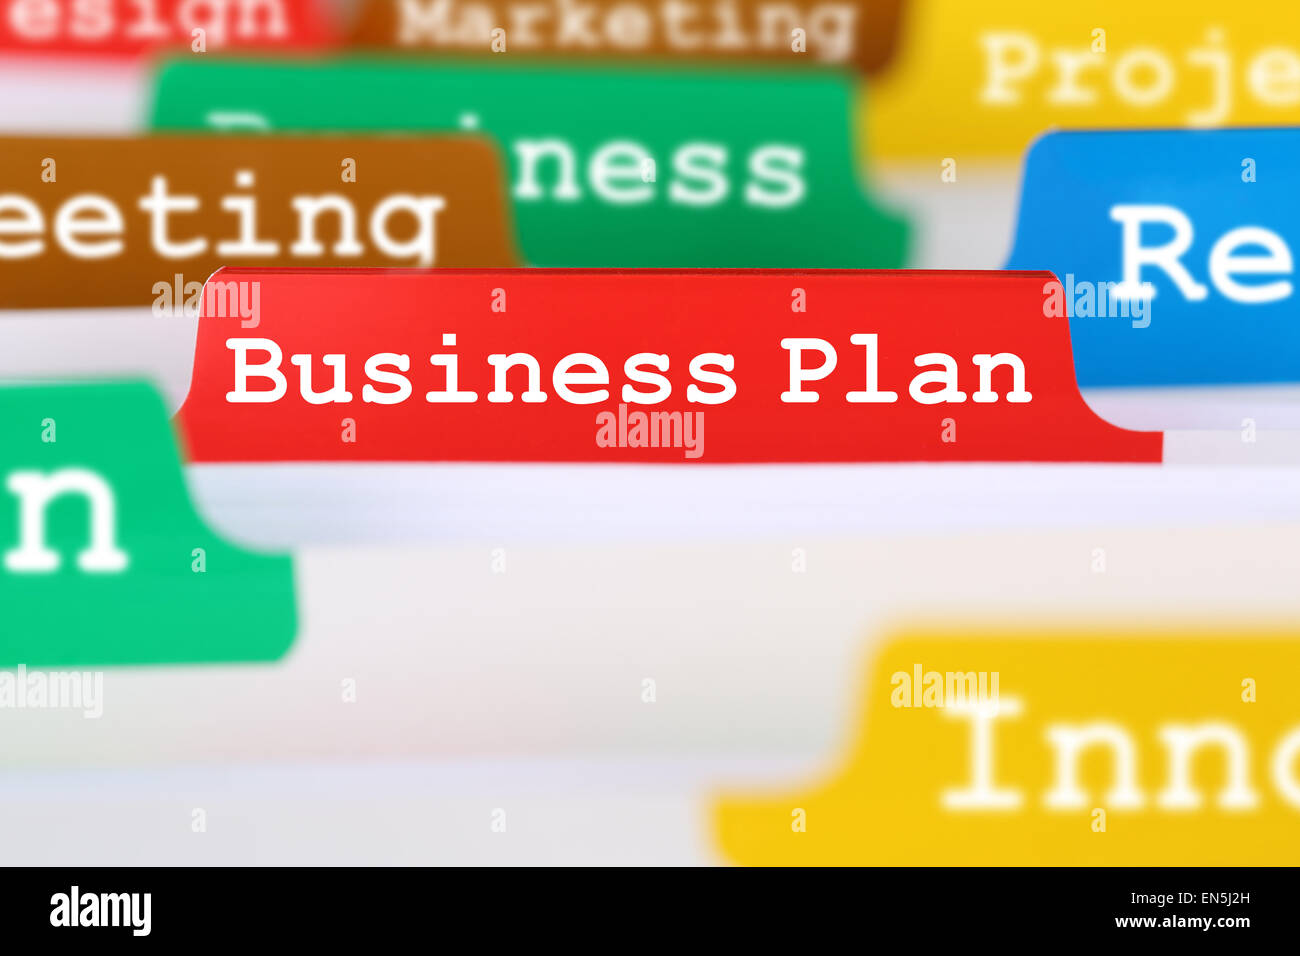 Business plan concept for success and growth when launching a new company or start up - Stock Image